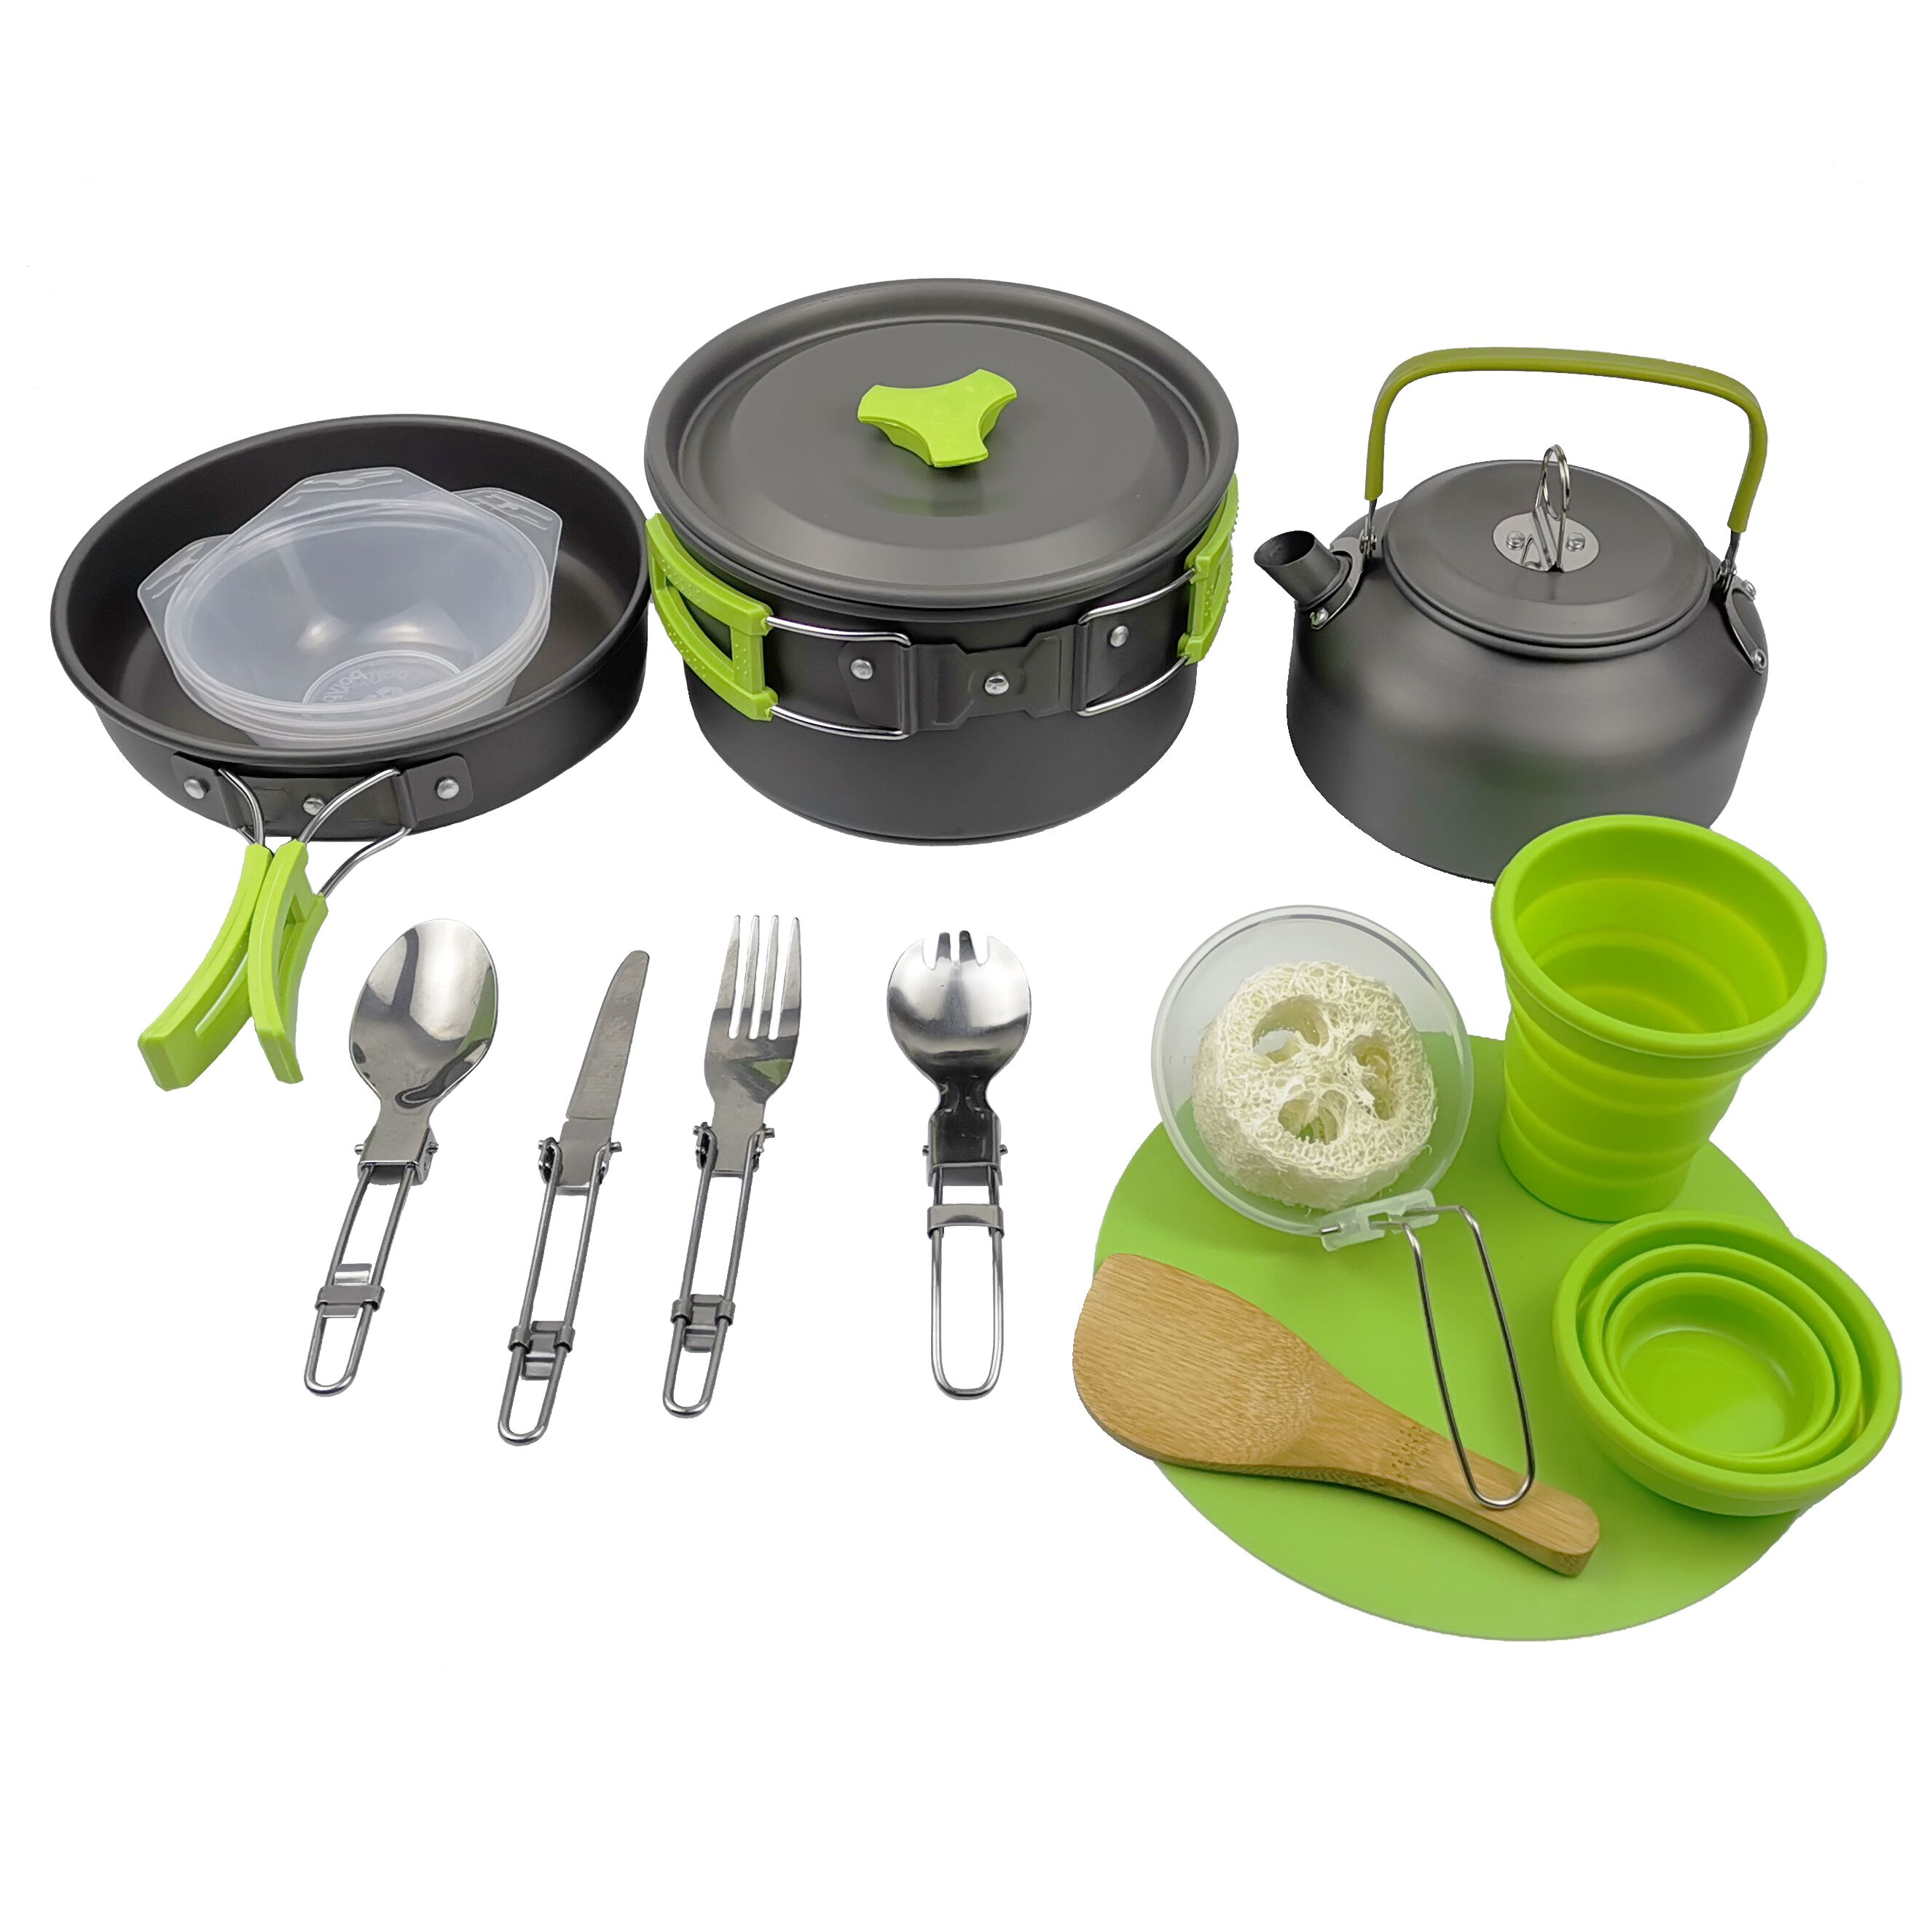 OutdoorBackpacking Camping Cookware  Lightweight Folding Picnic Camp Cooking Gear